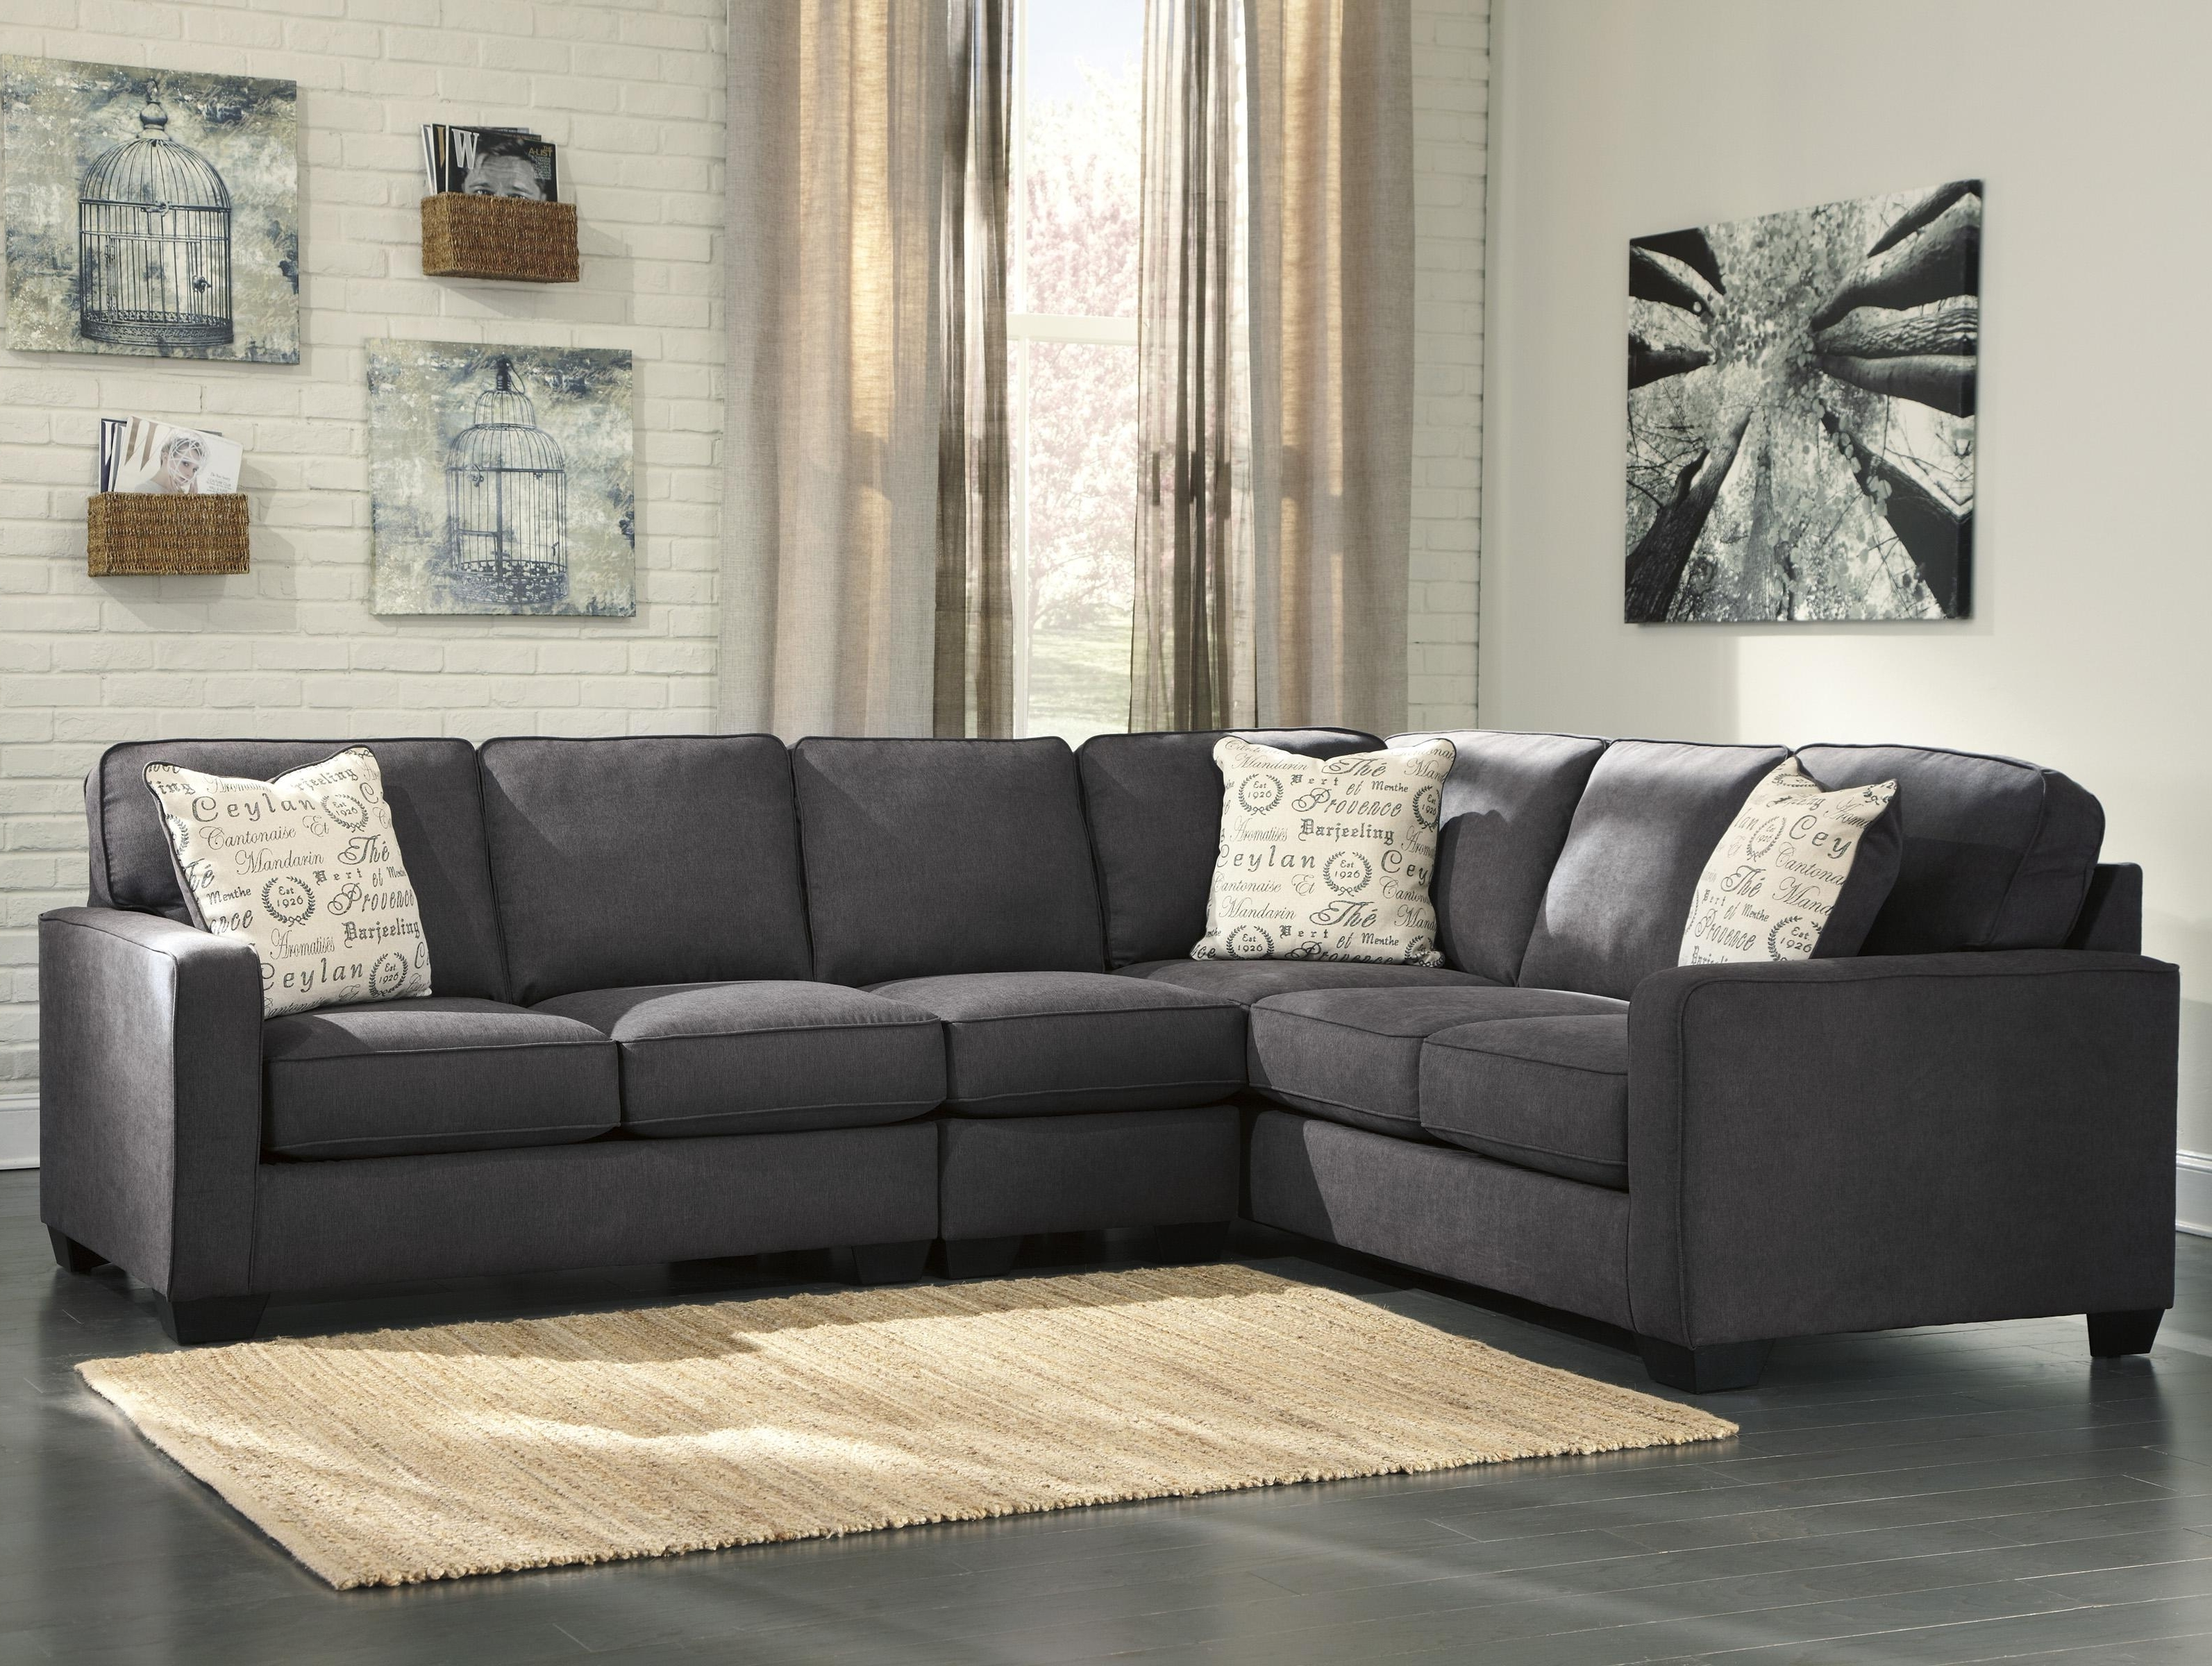 Ashley Signature Design Alenya – Charcoal 3 Piece Sectional With Inside 2018 Sectional Sofas At Ashley (View 4 of 15)